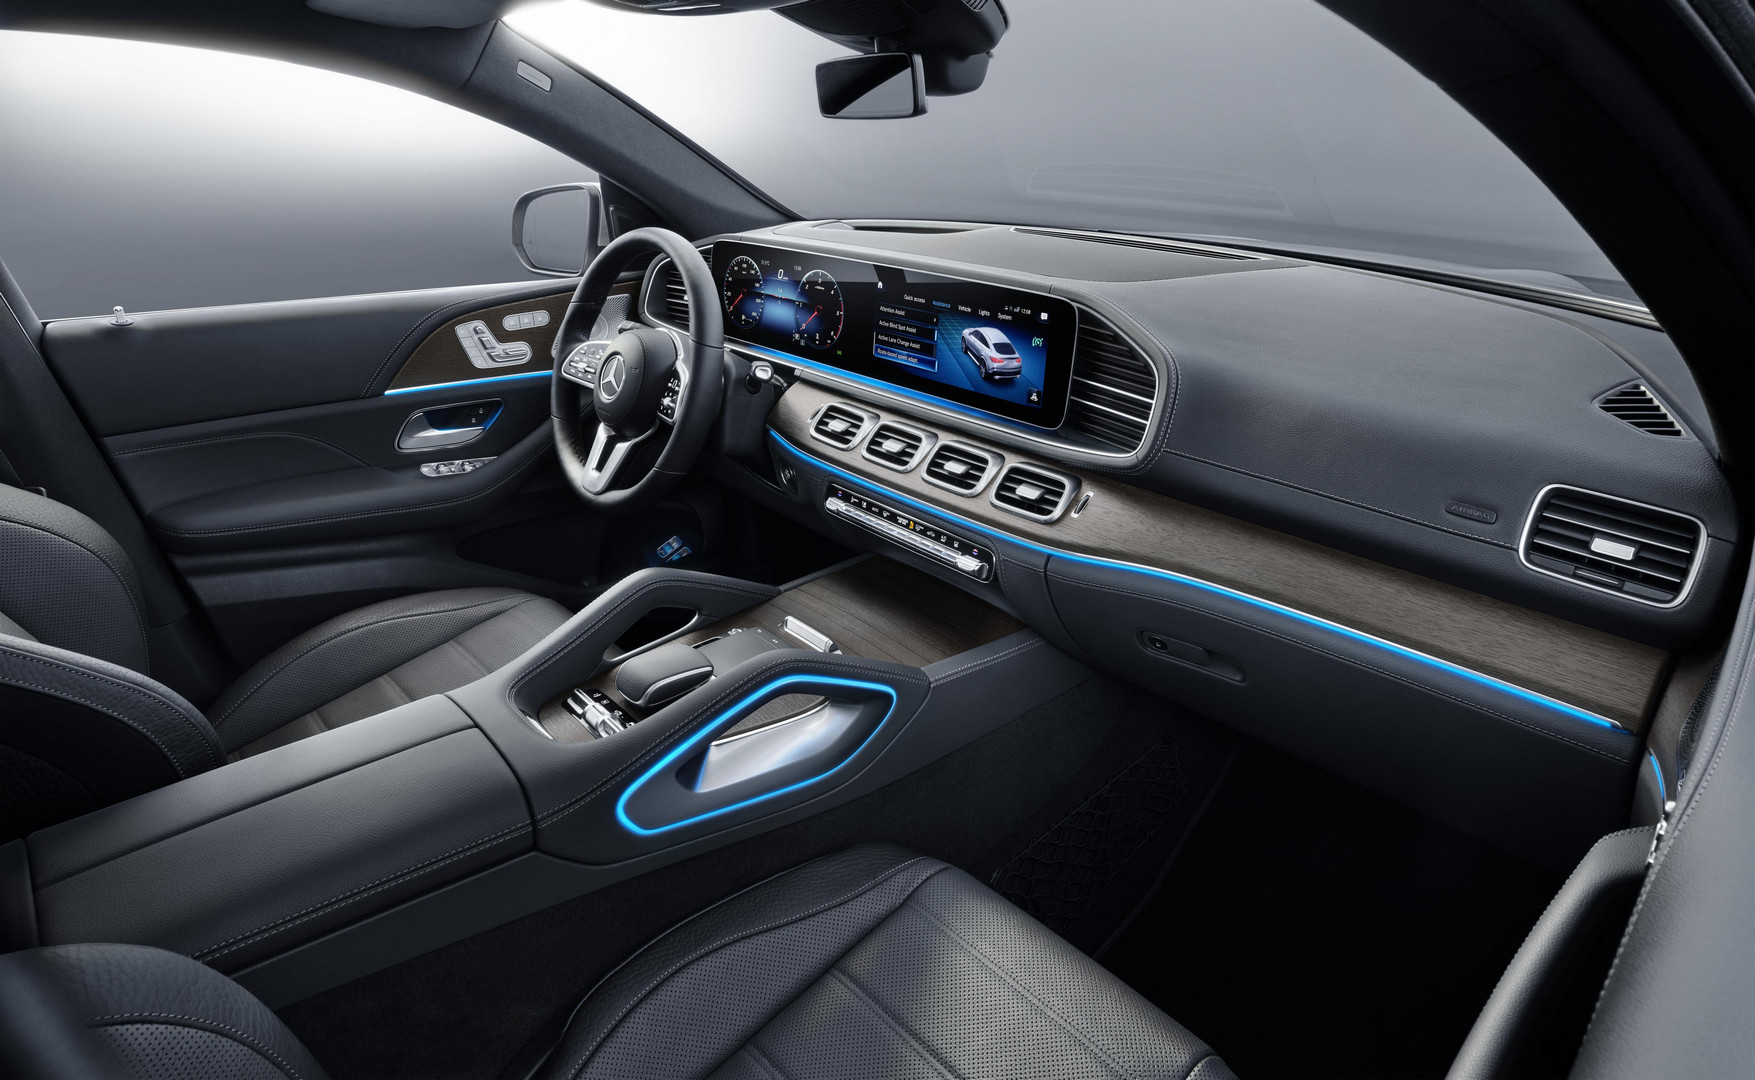 2020 Mercedes-Benz GLE Coupe Dashboard